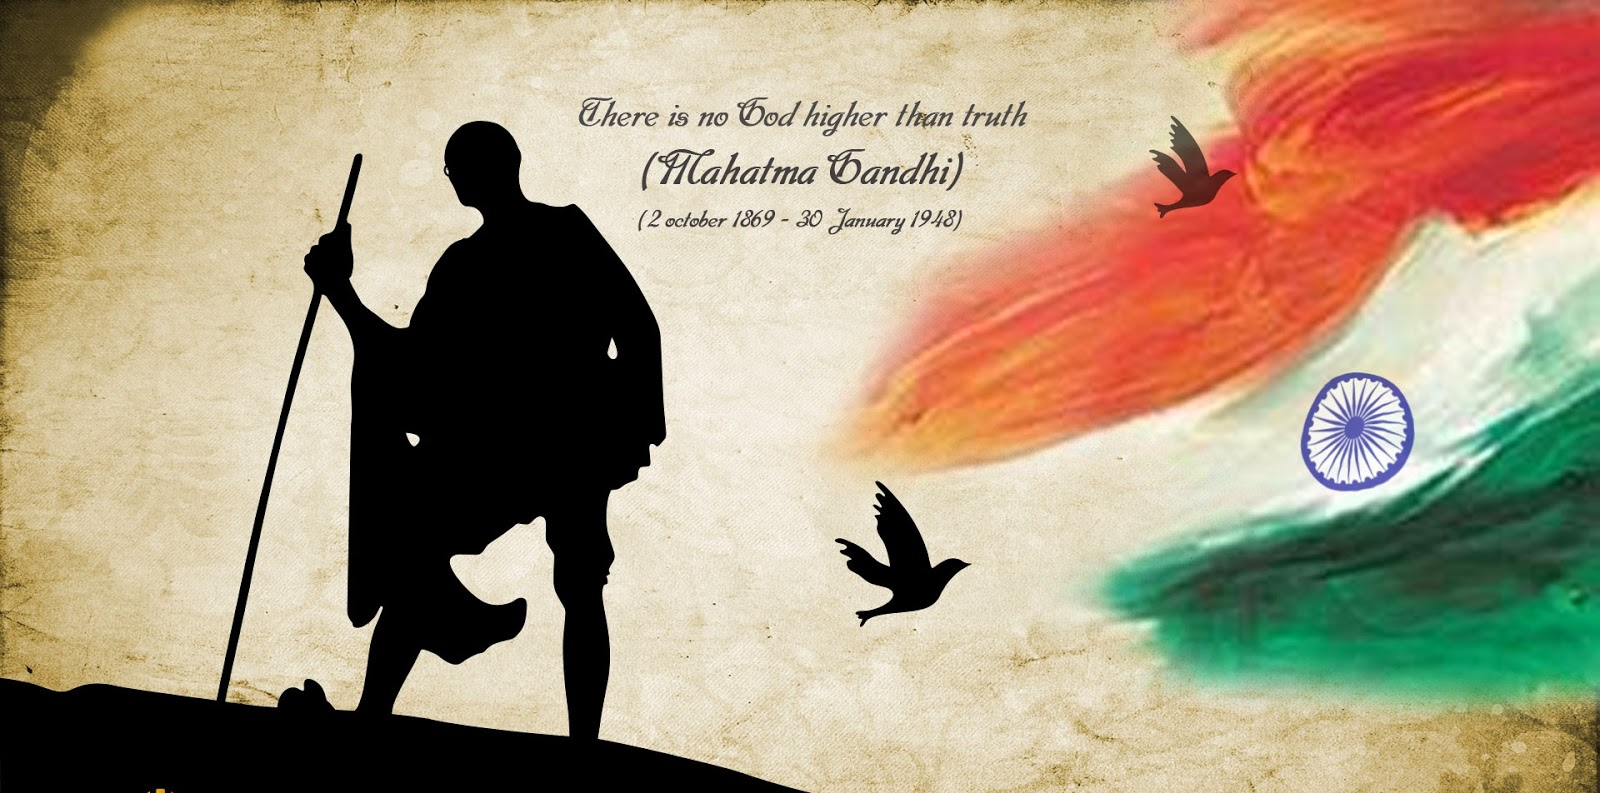 patriotism in india Read and share these patriotic indian independence day poems in english, patriotic poems are the best way to express our feeling and love for the country, so in this article, we've compiled some happy independence day poetry in english, independence day is celebrated to commemorate the freedom of india from the british rule in 1947.